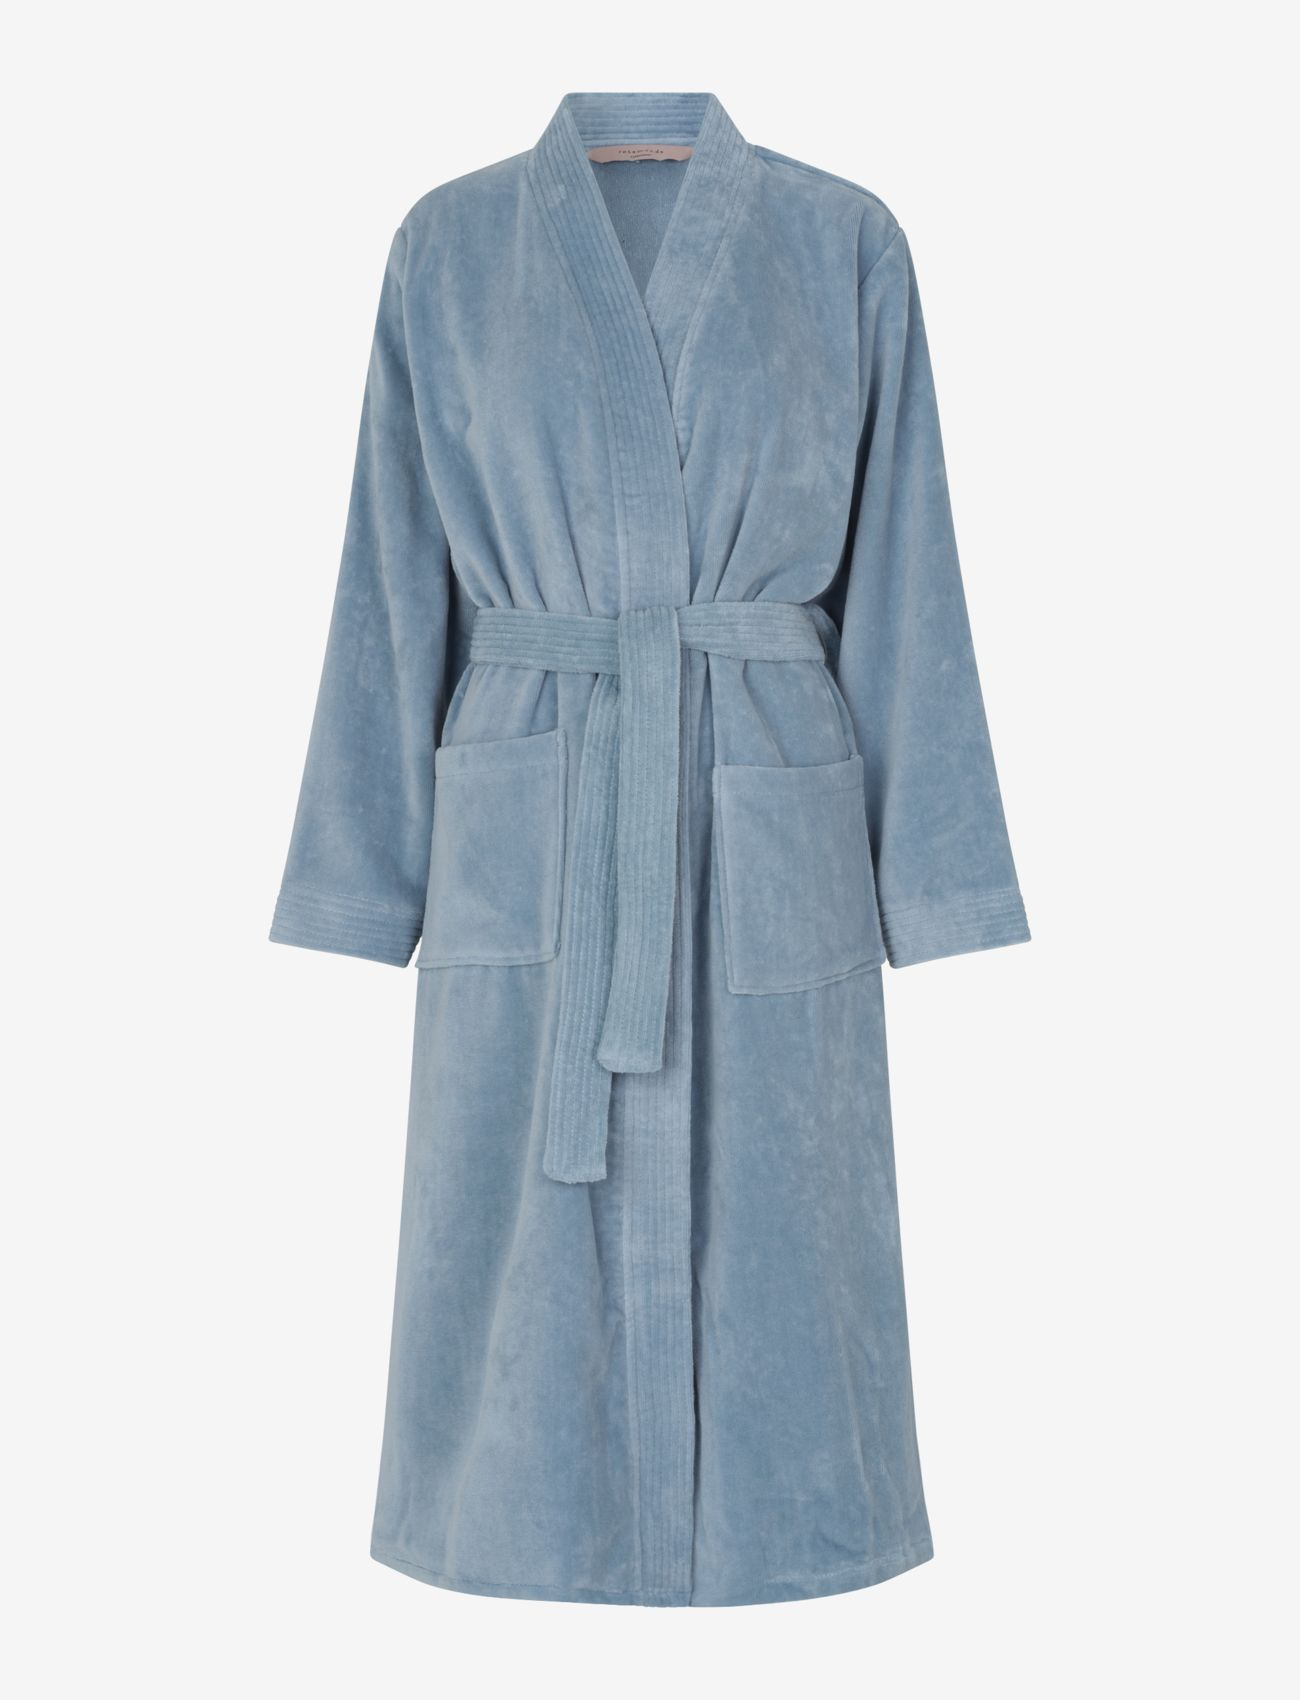 Rosemunde - robe - pegnoirs - dusty blue - 0